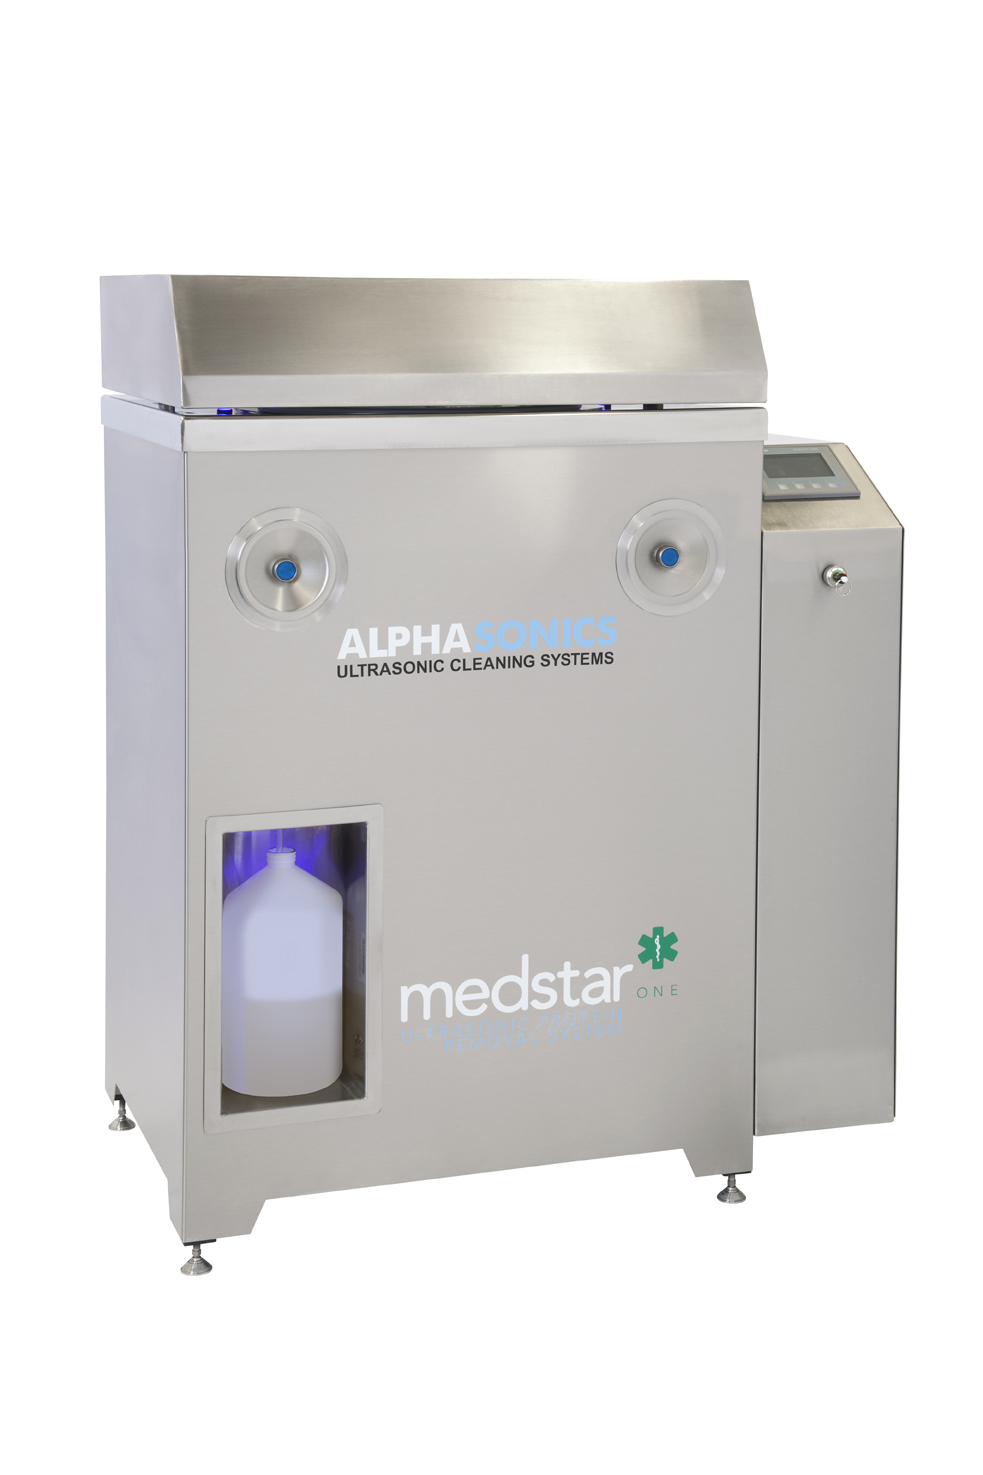 A wide shot of the Medstar system, available from Alphasonics.